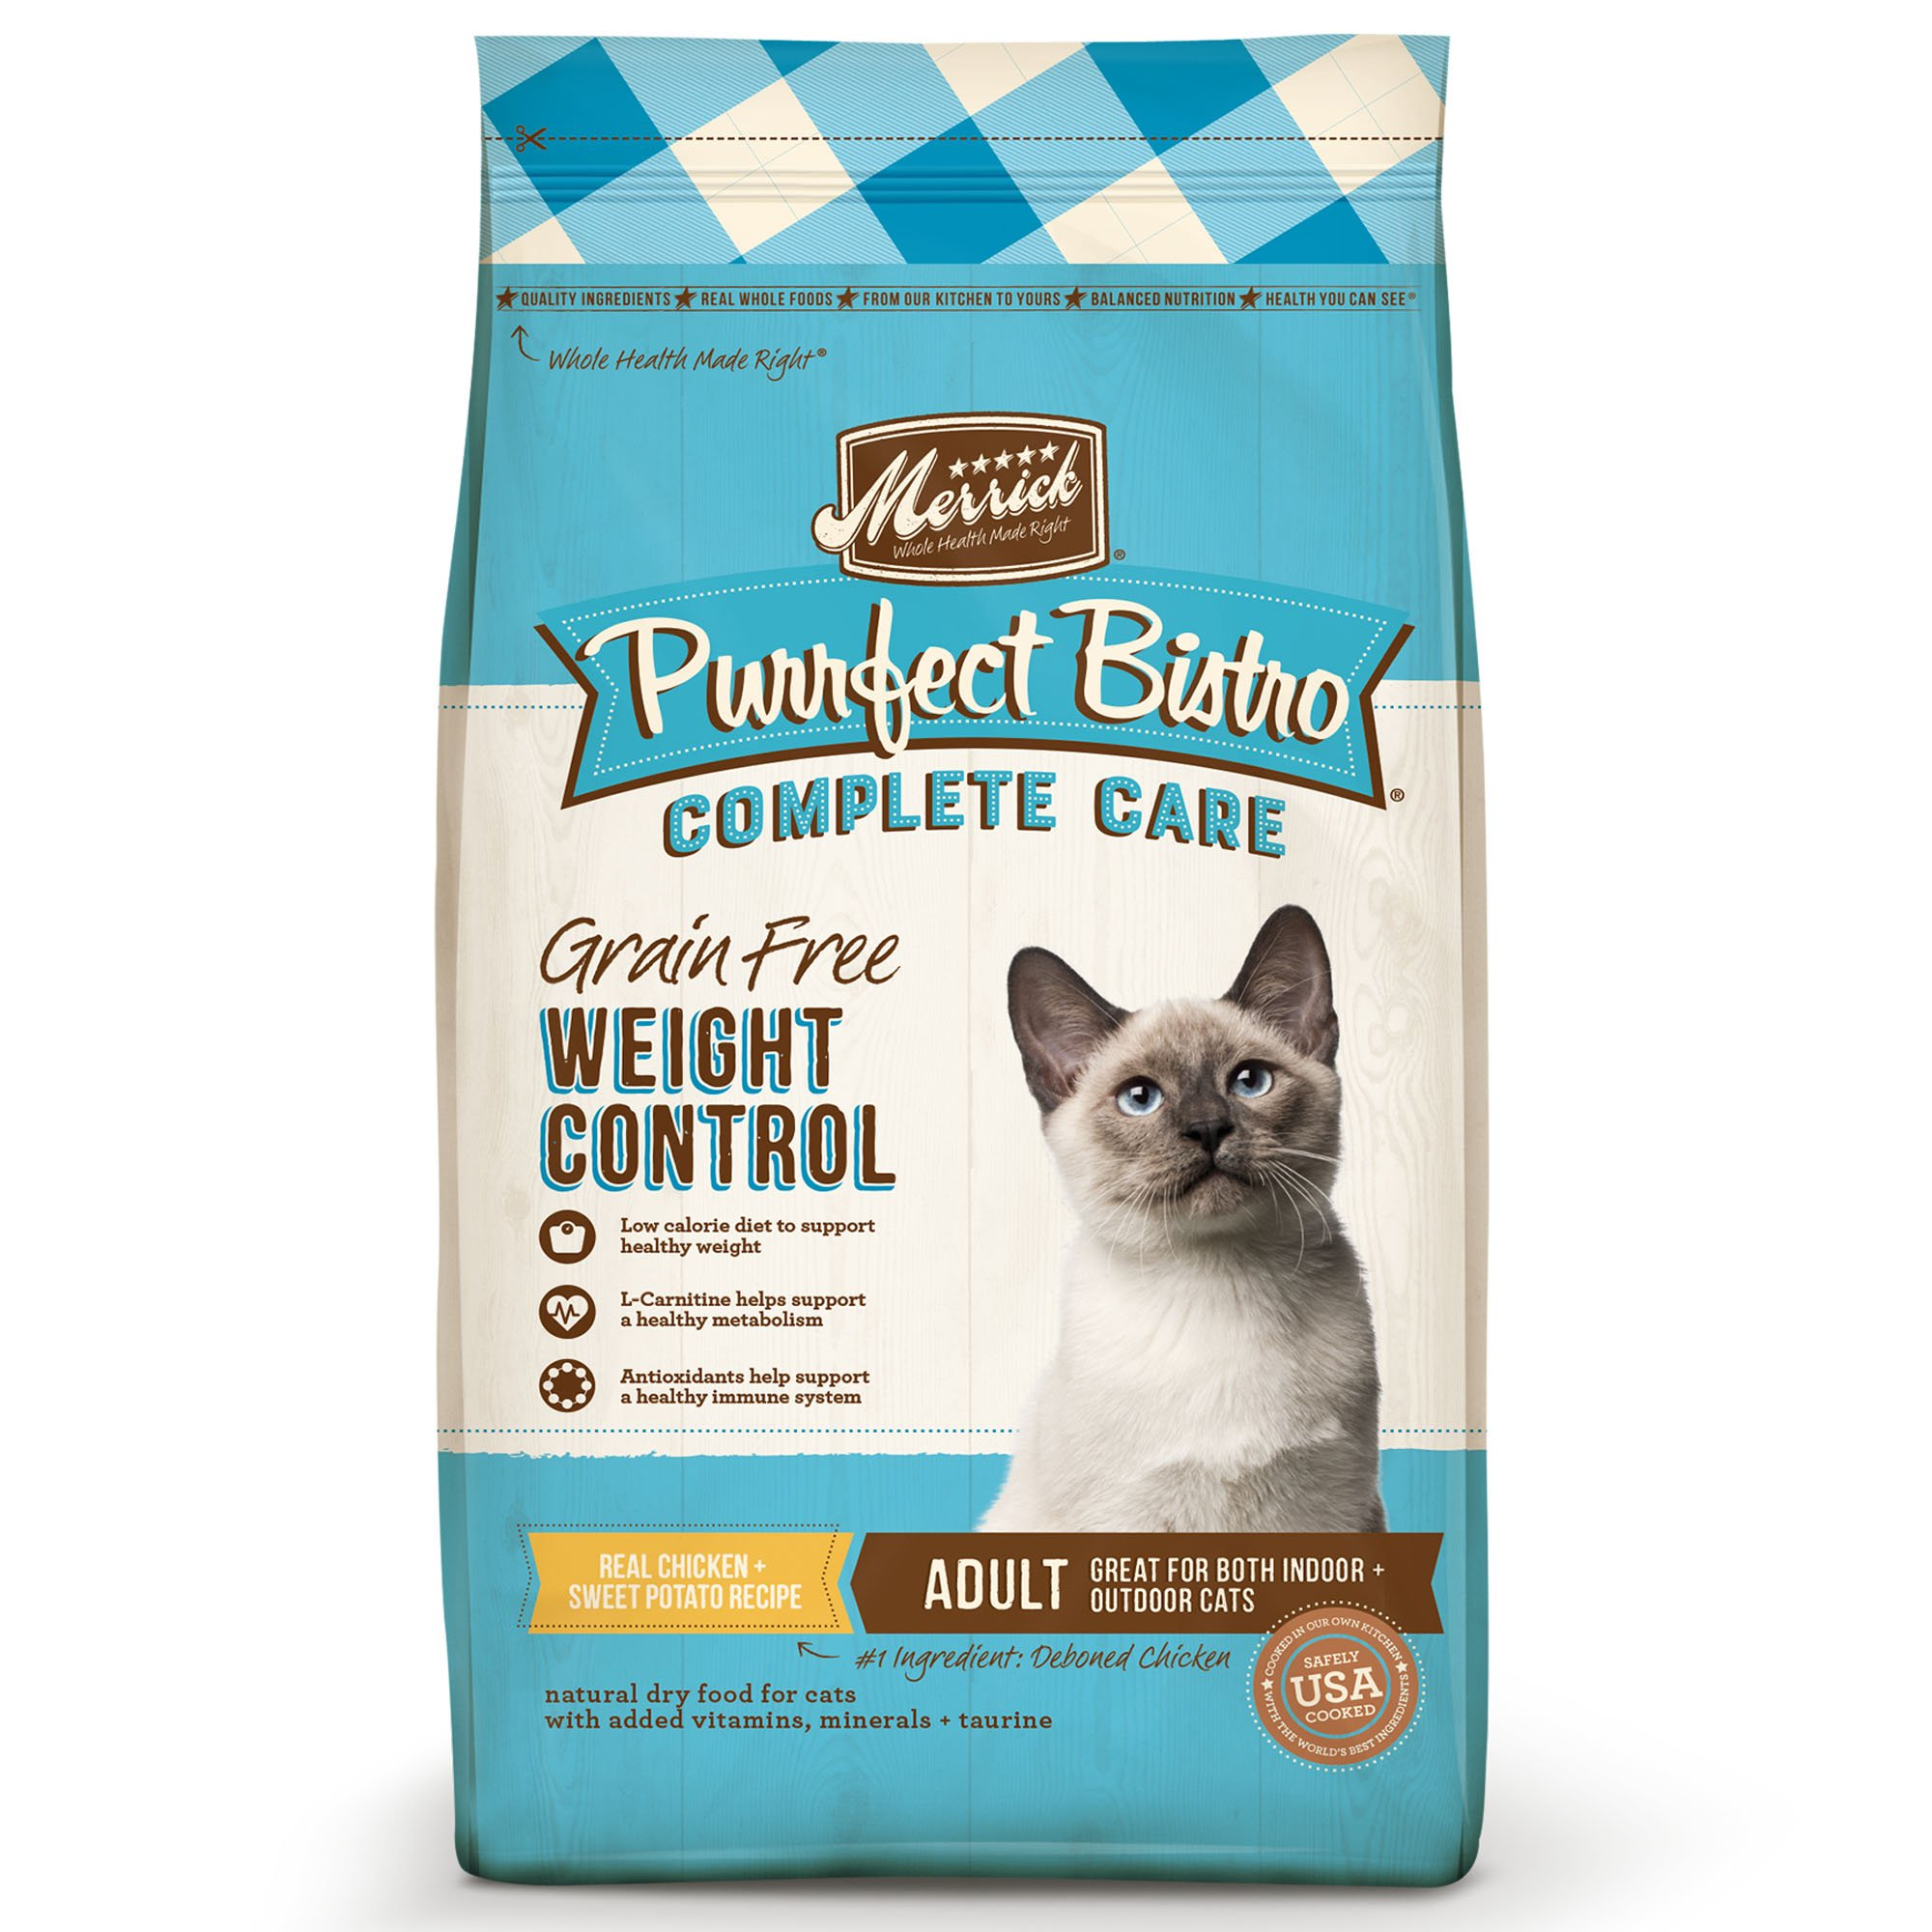 Merrick Purrfect Bistro Complete Care Grain Free Weight Control Dry Cat Food Recipe by Merrick